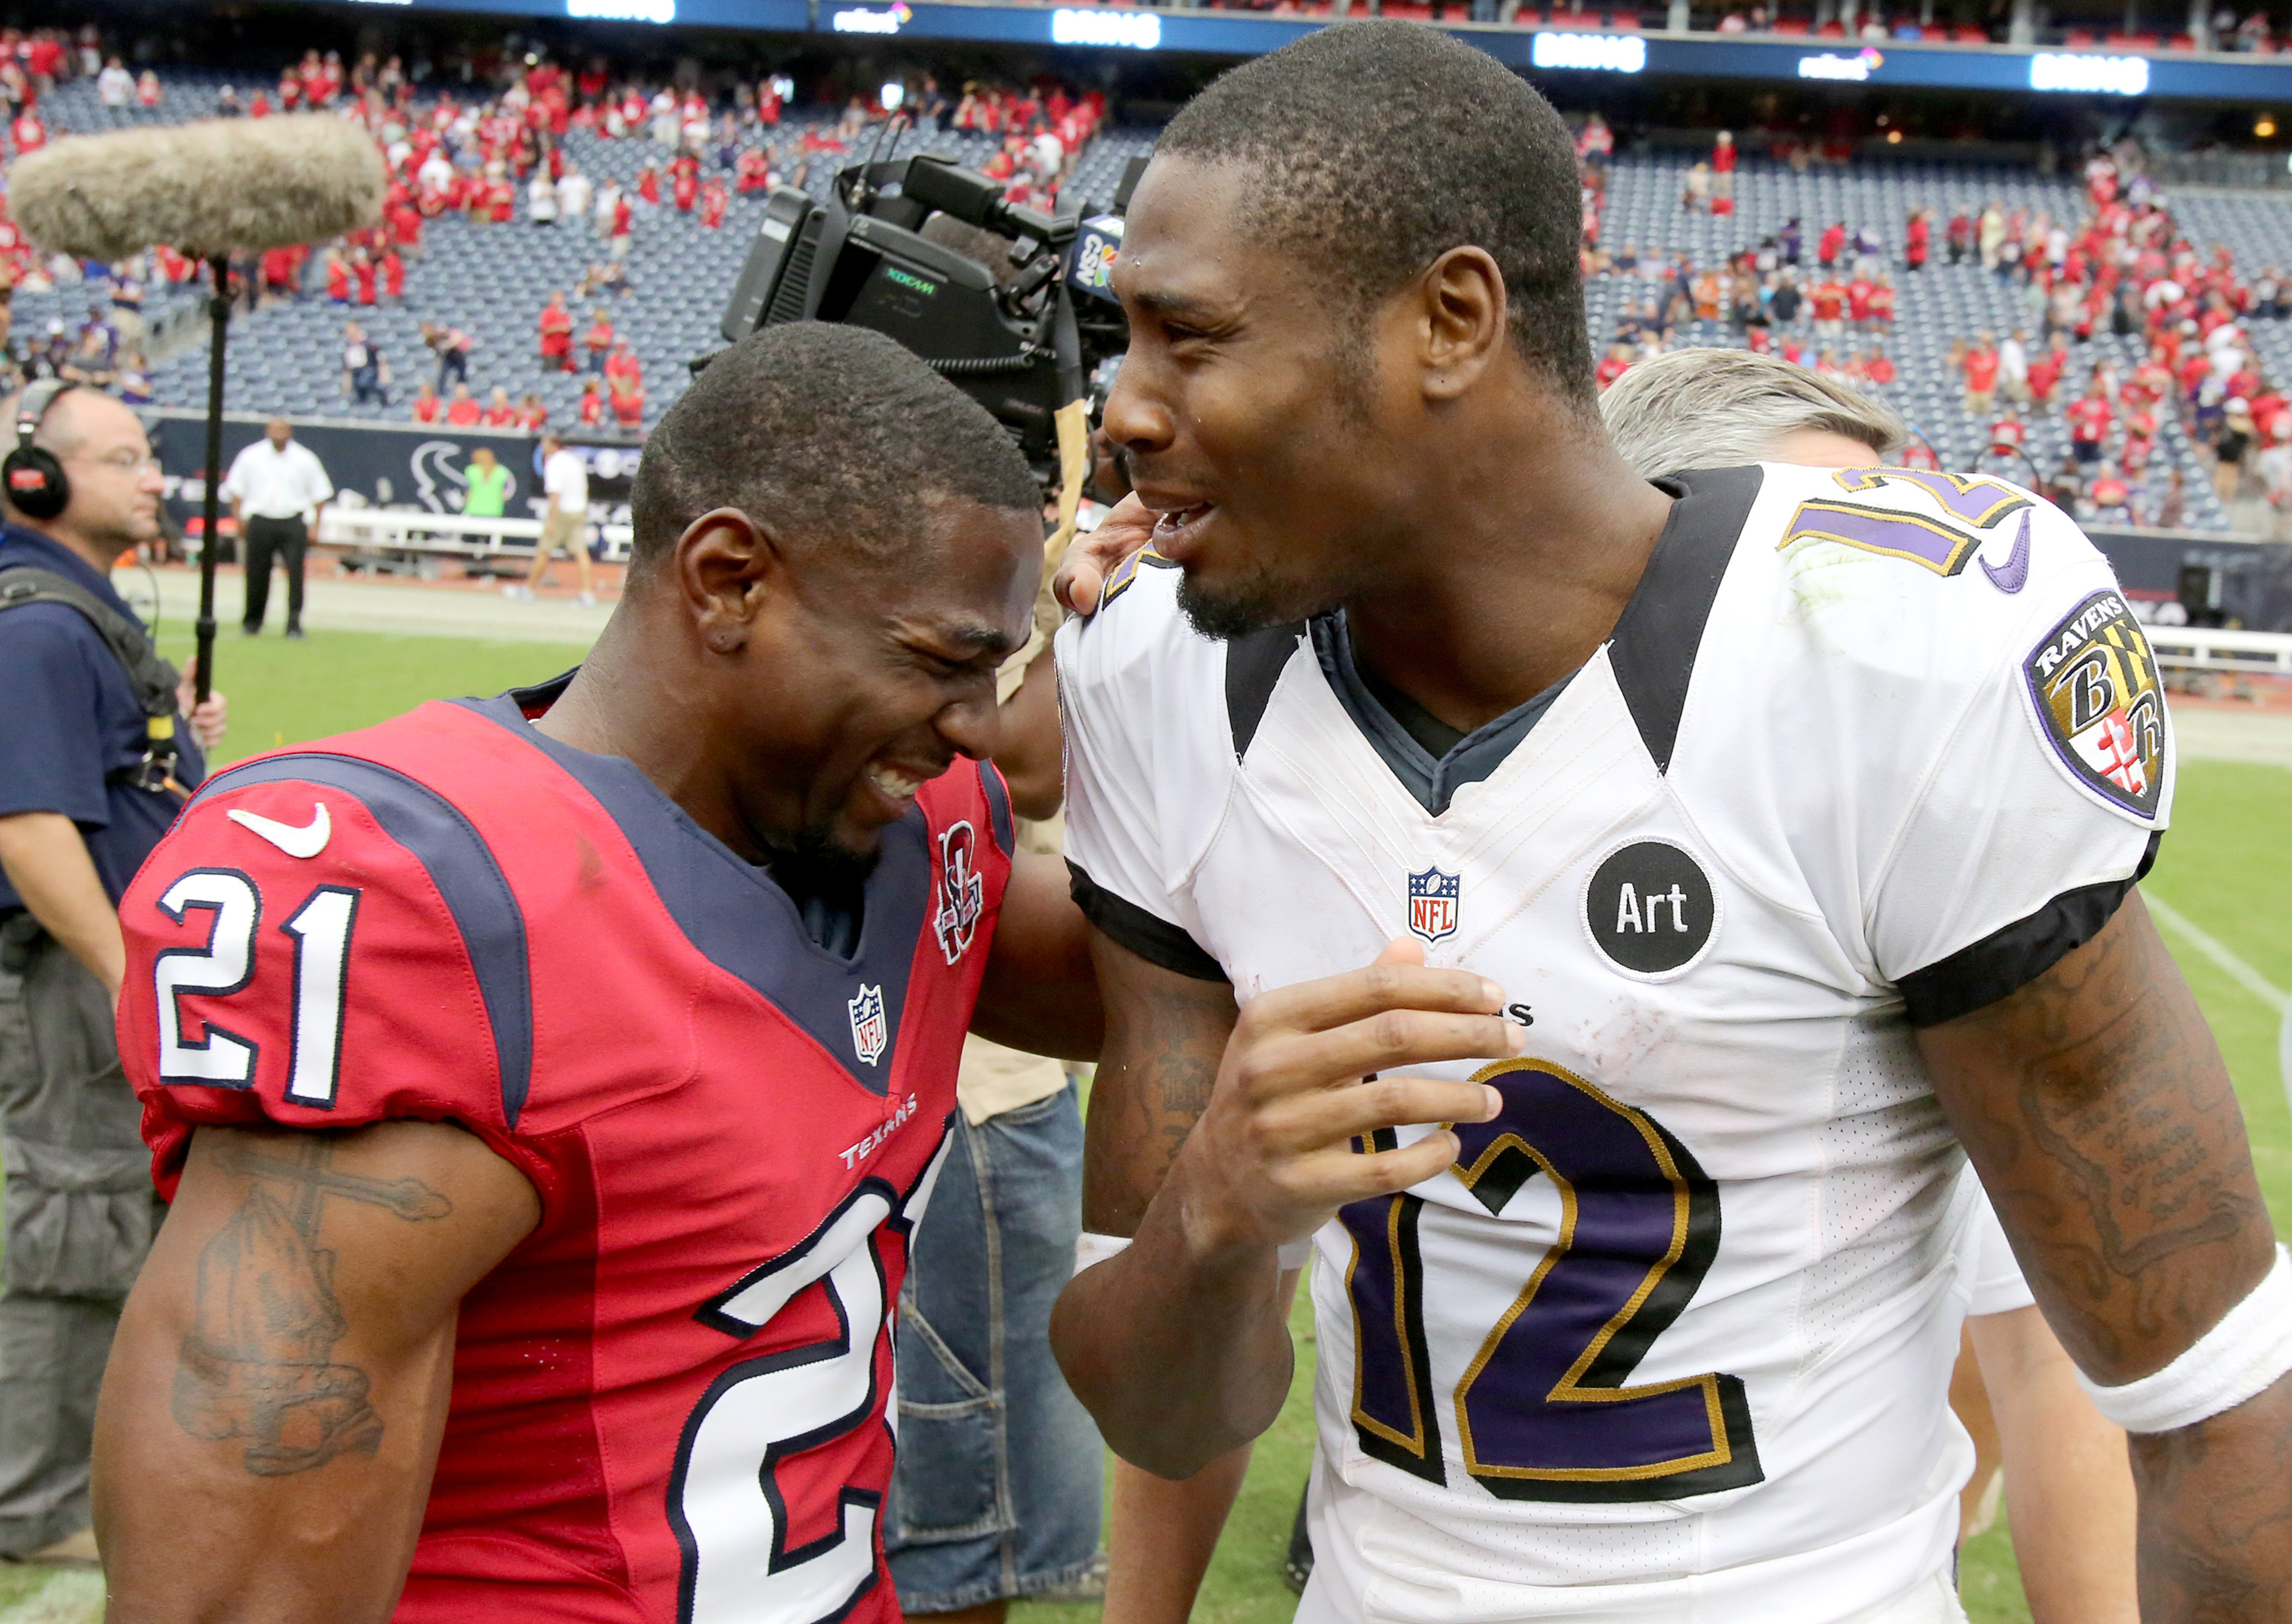 Brice McCain had no idea what Jacoby Jones was saying, so he thought of Buffalo Wild Wings instead to make him happy.